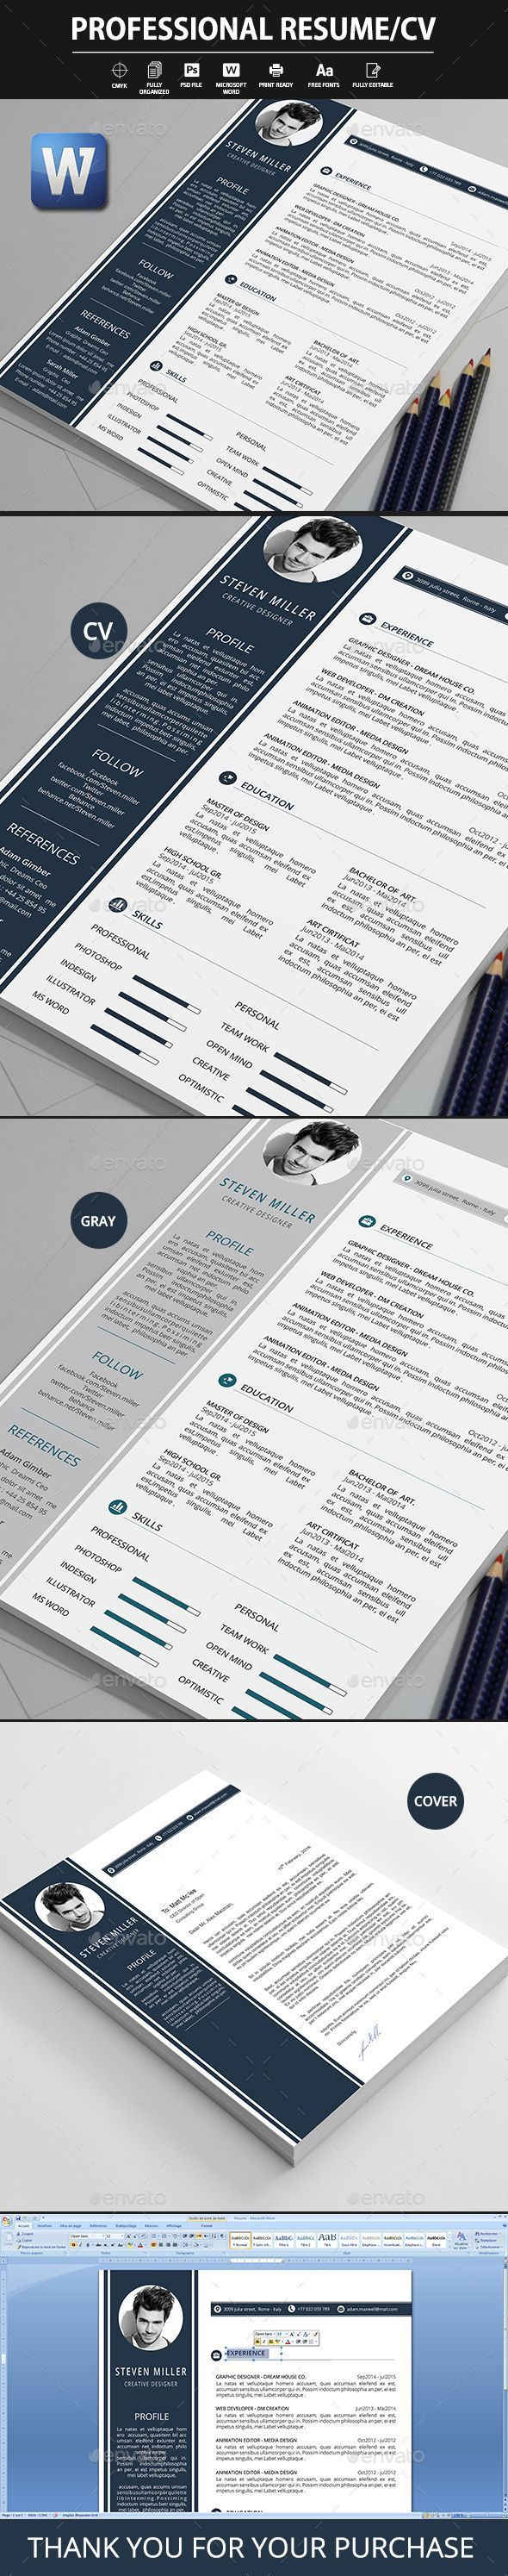 Professional resume template PSD. Download here